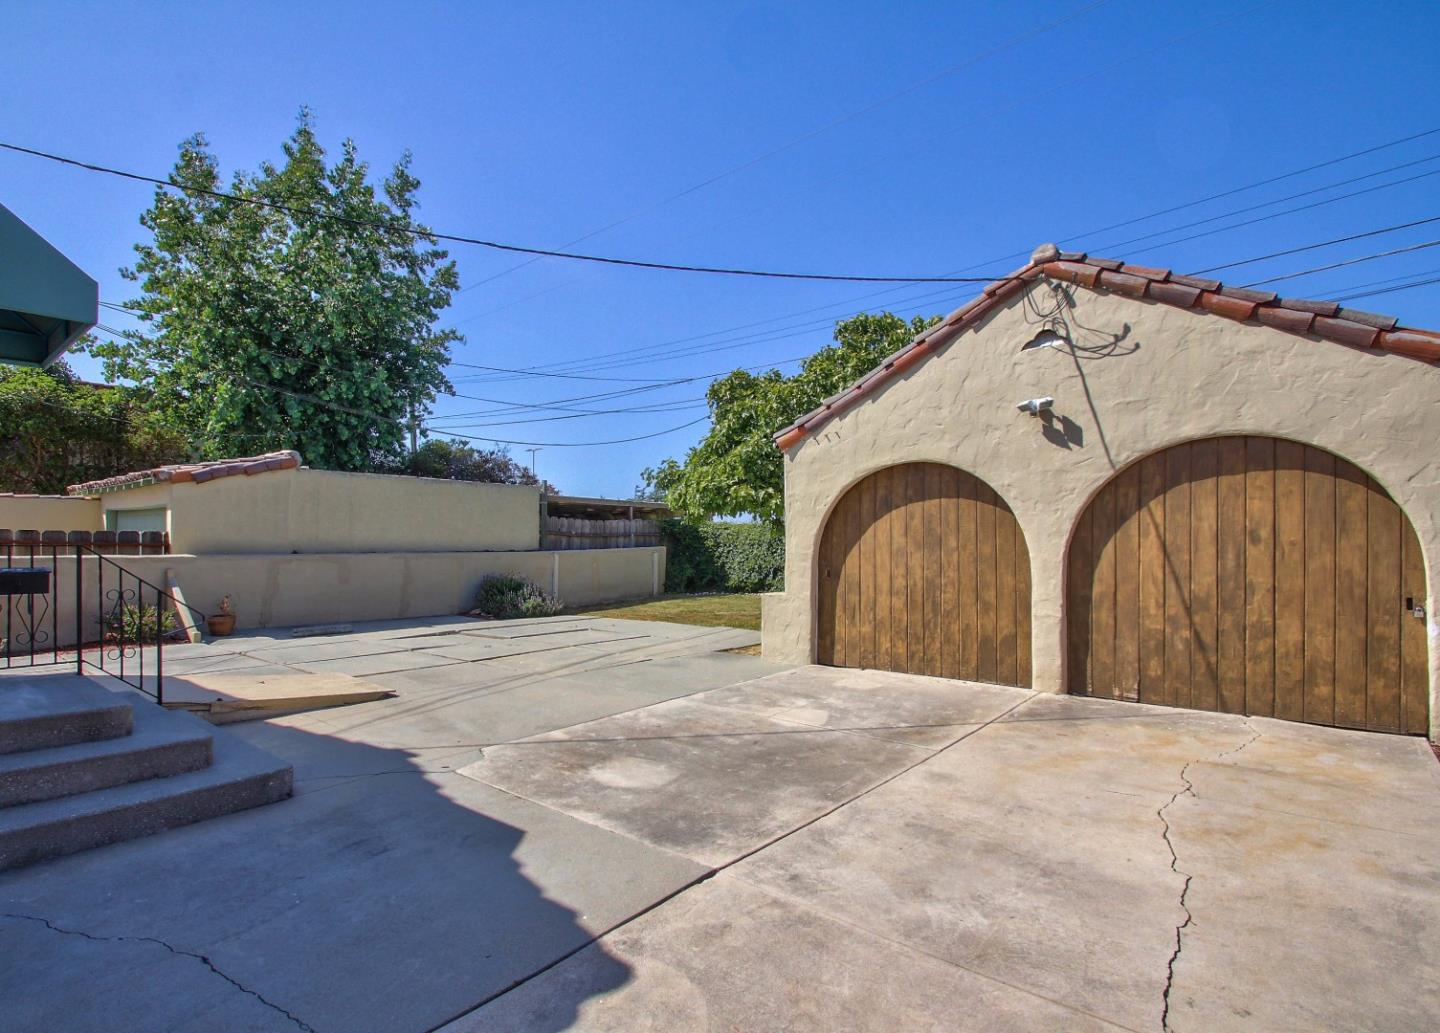 Additional photo for property listing at 14 Orange Drive  Salinas, カリフォルニア 93901 アメリカ合衆国